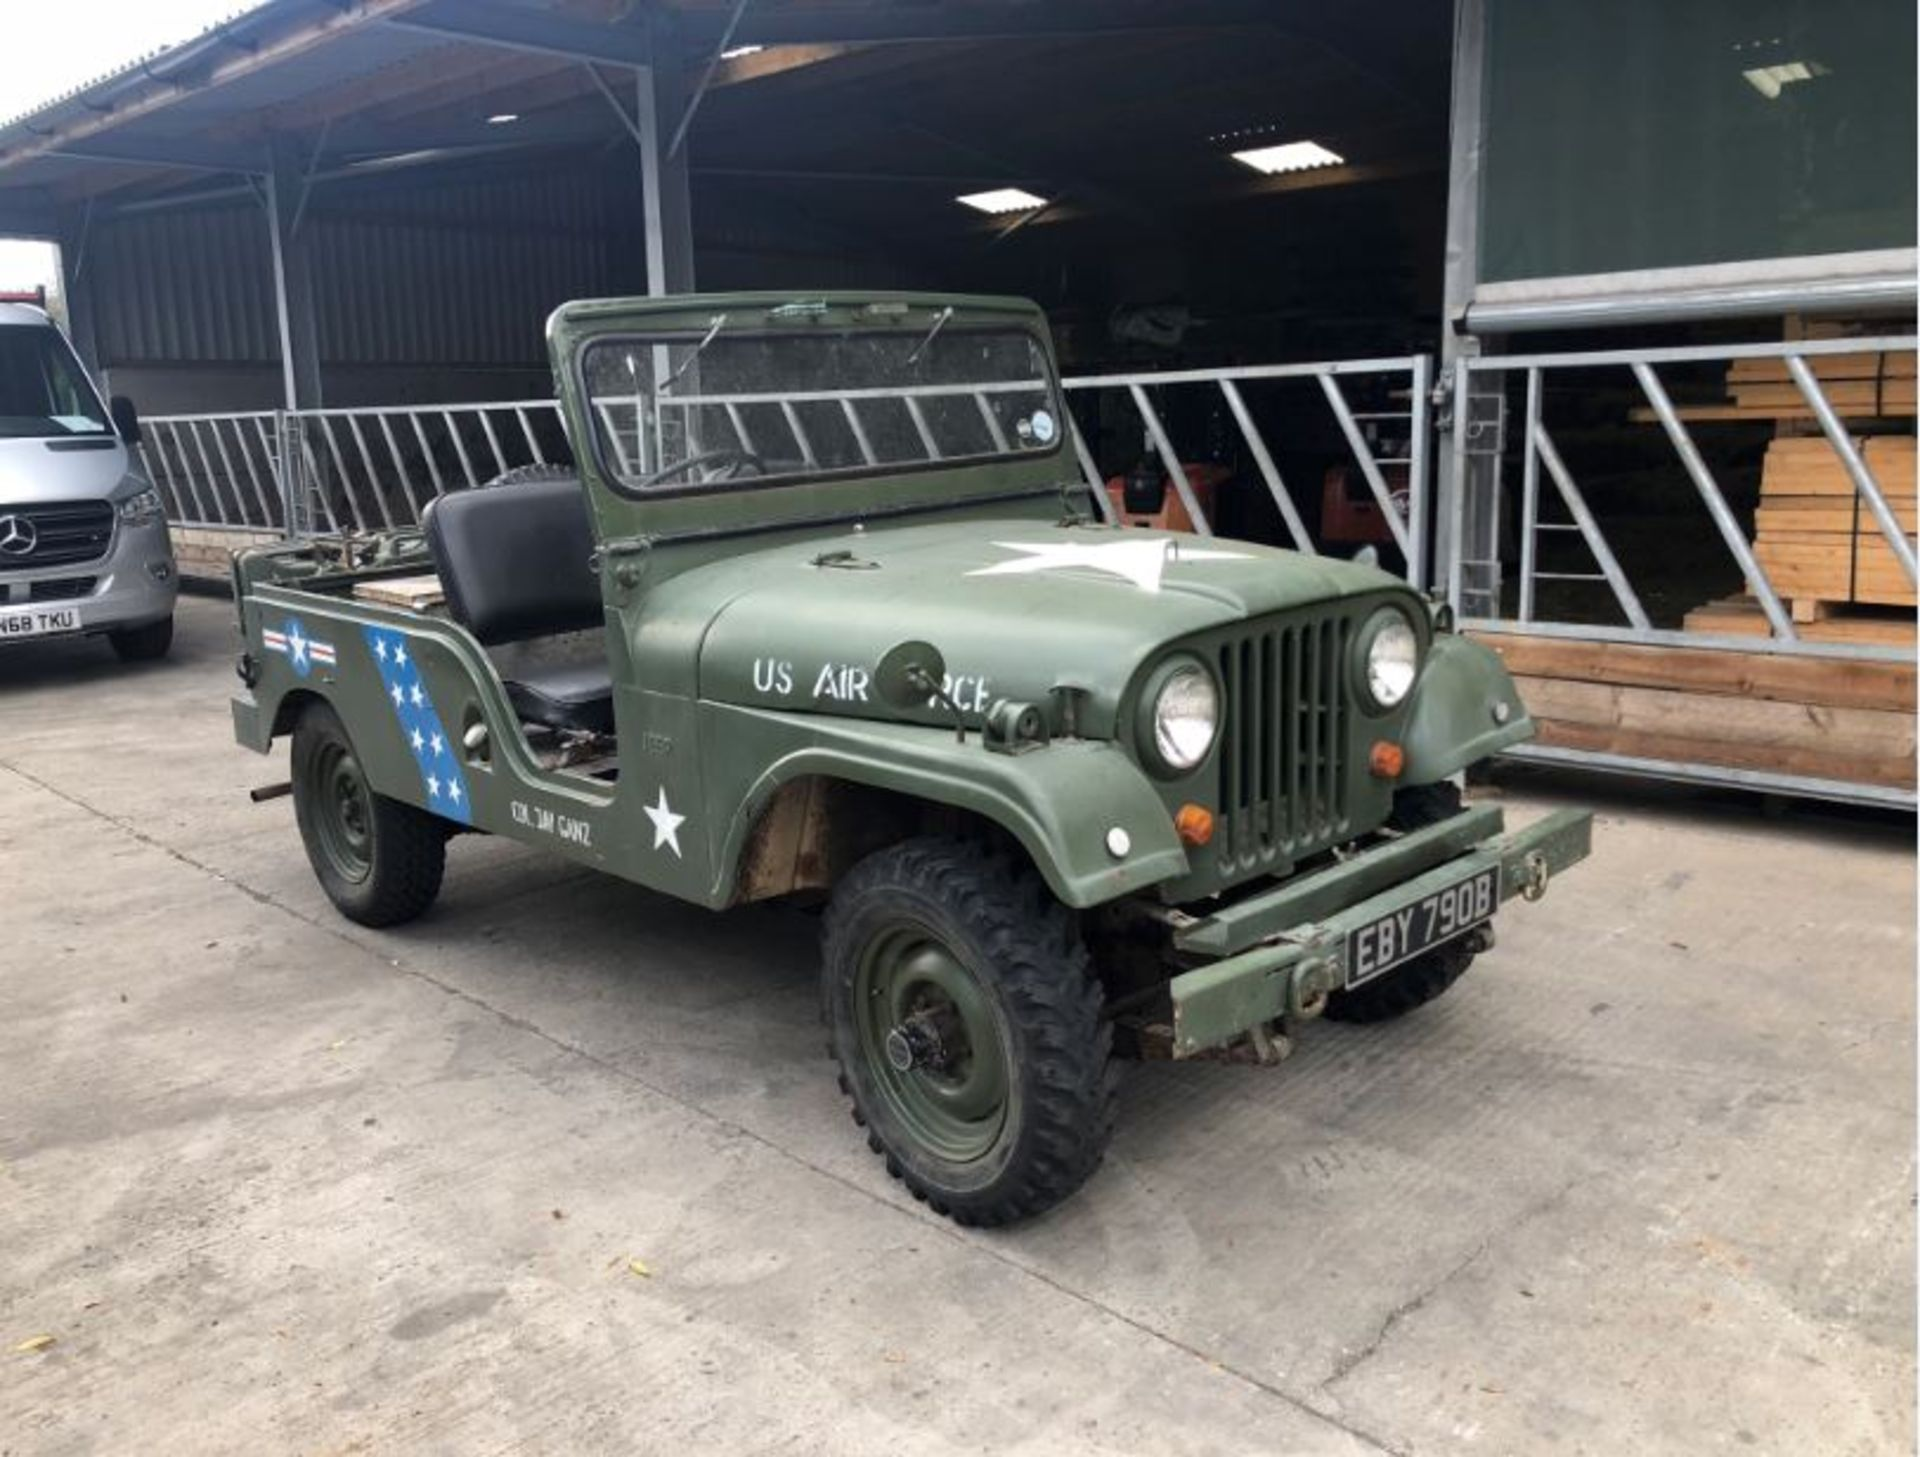 Lotto 406 - WILLYS JEEP CJ6 YEAR 1964, RIGHT HAND DRIVE, ONLY 26751 MILES *PLUS VAT*